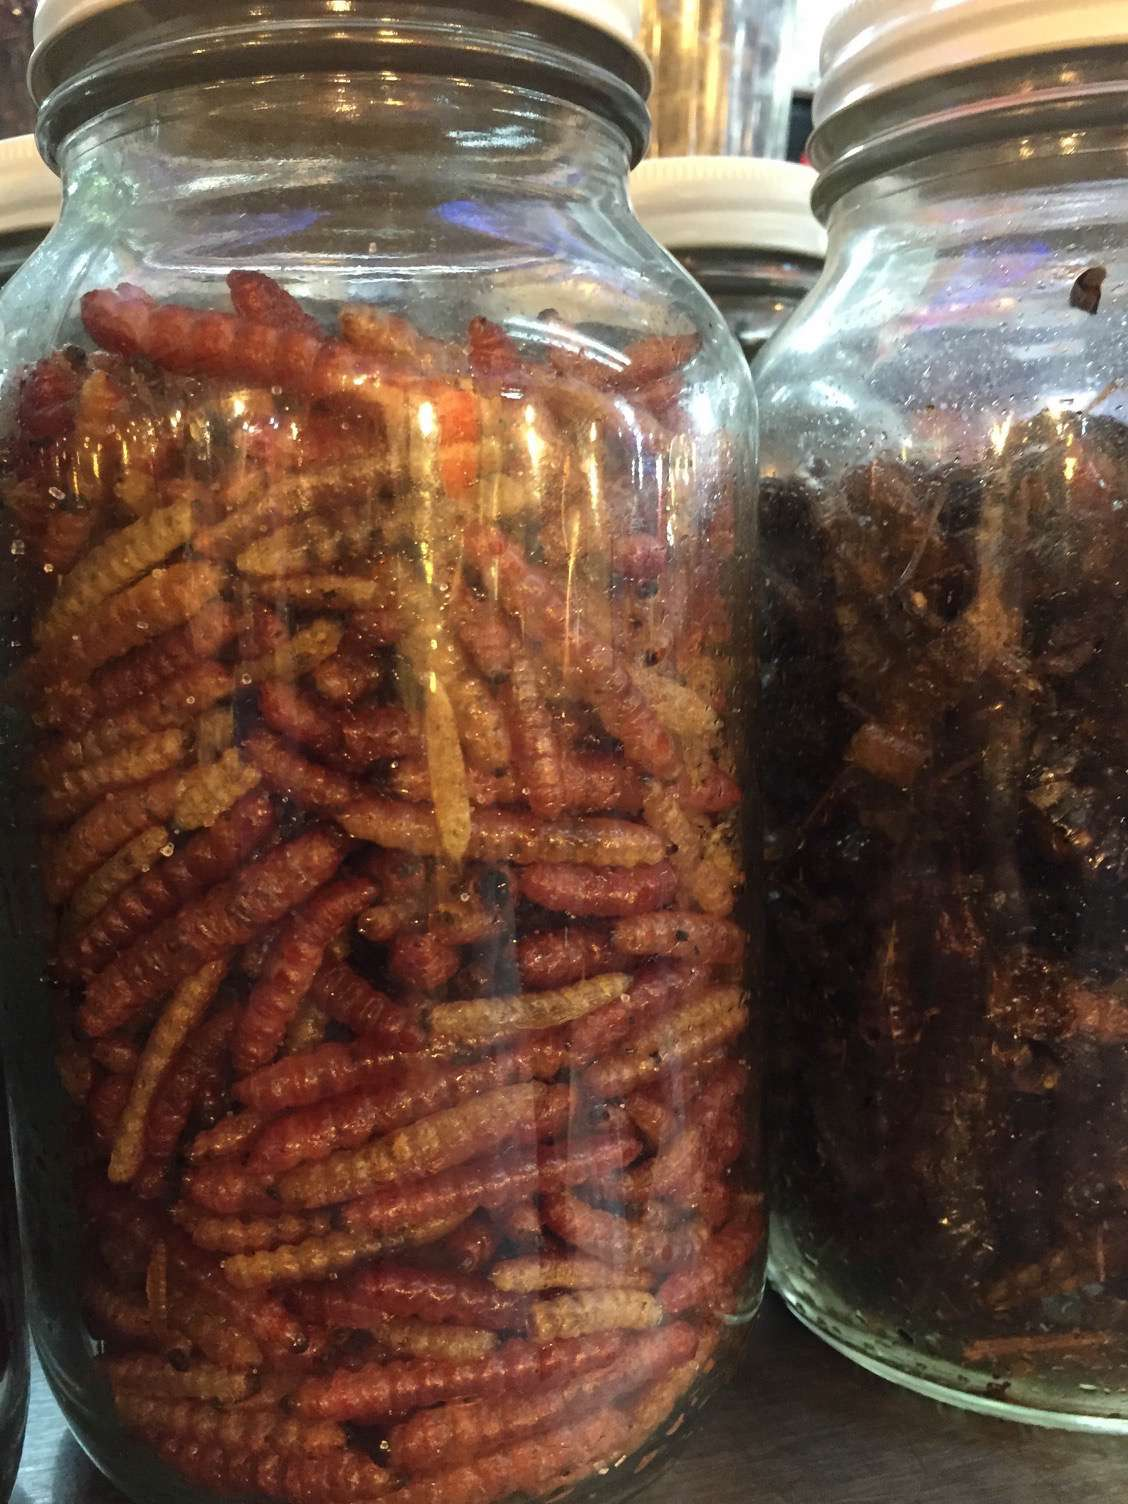 Don't knock it, until you've tried some of the delicious insects. They generally have a nutty flavor.